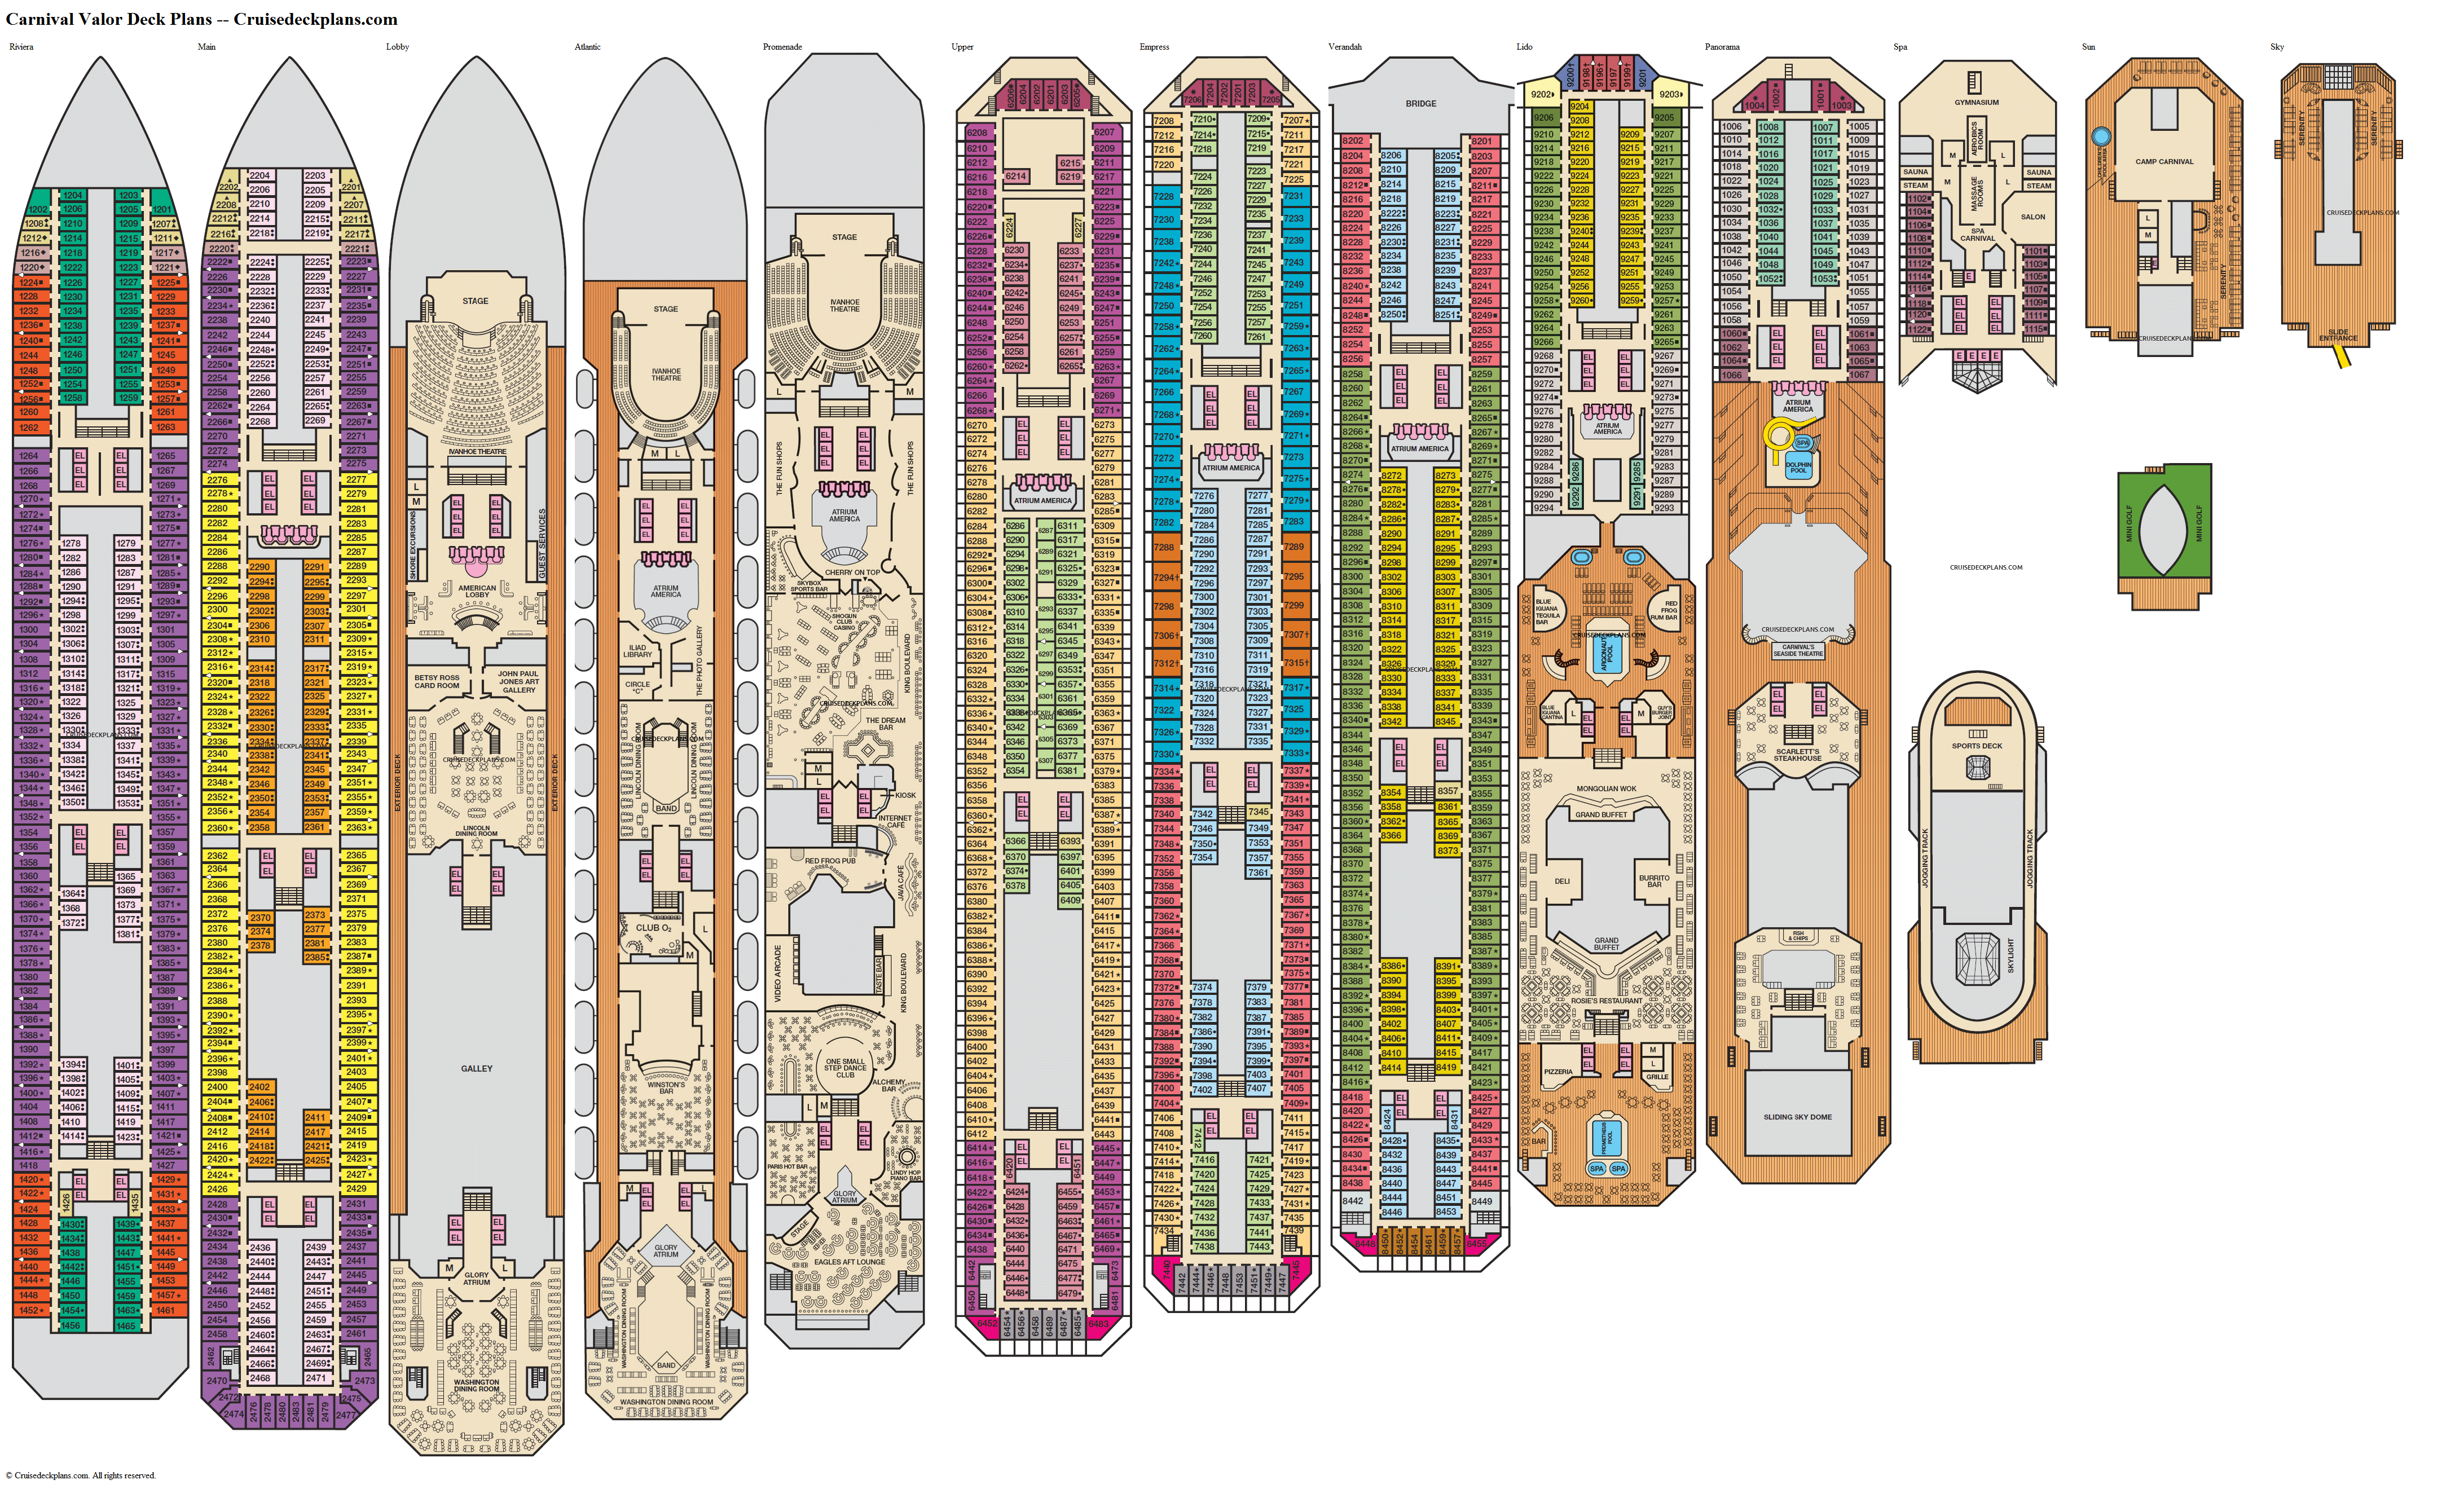 Carnival Valor deck plans image